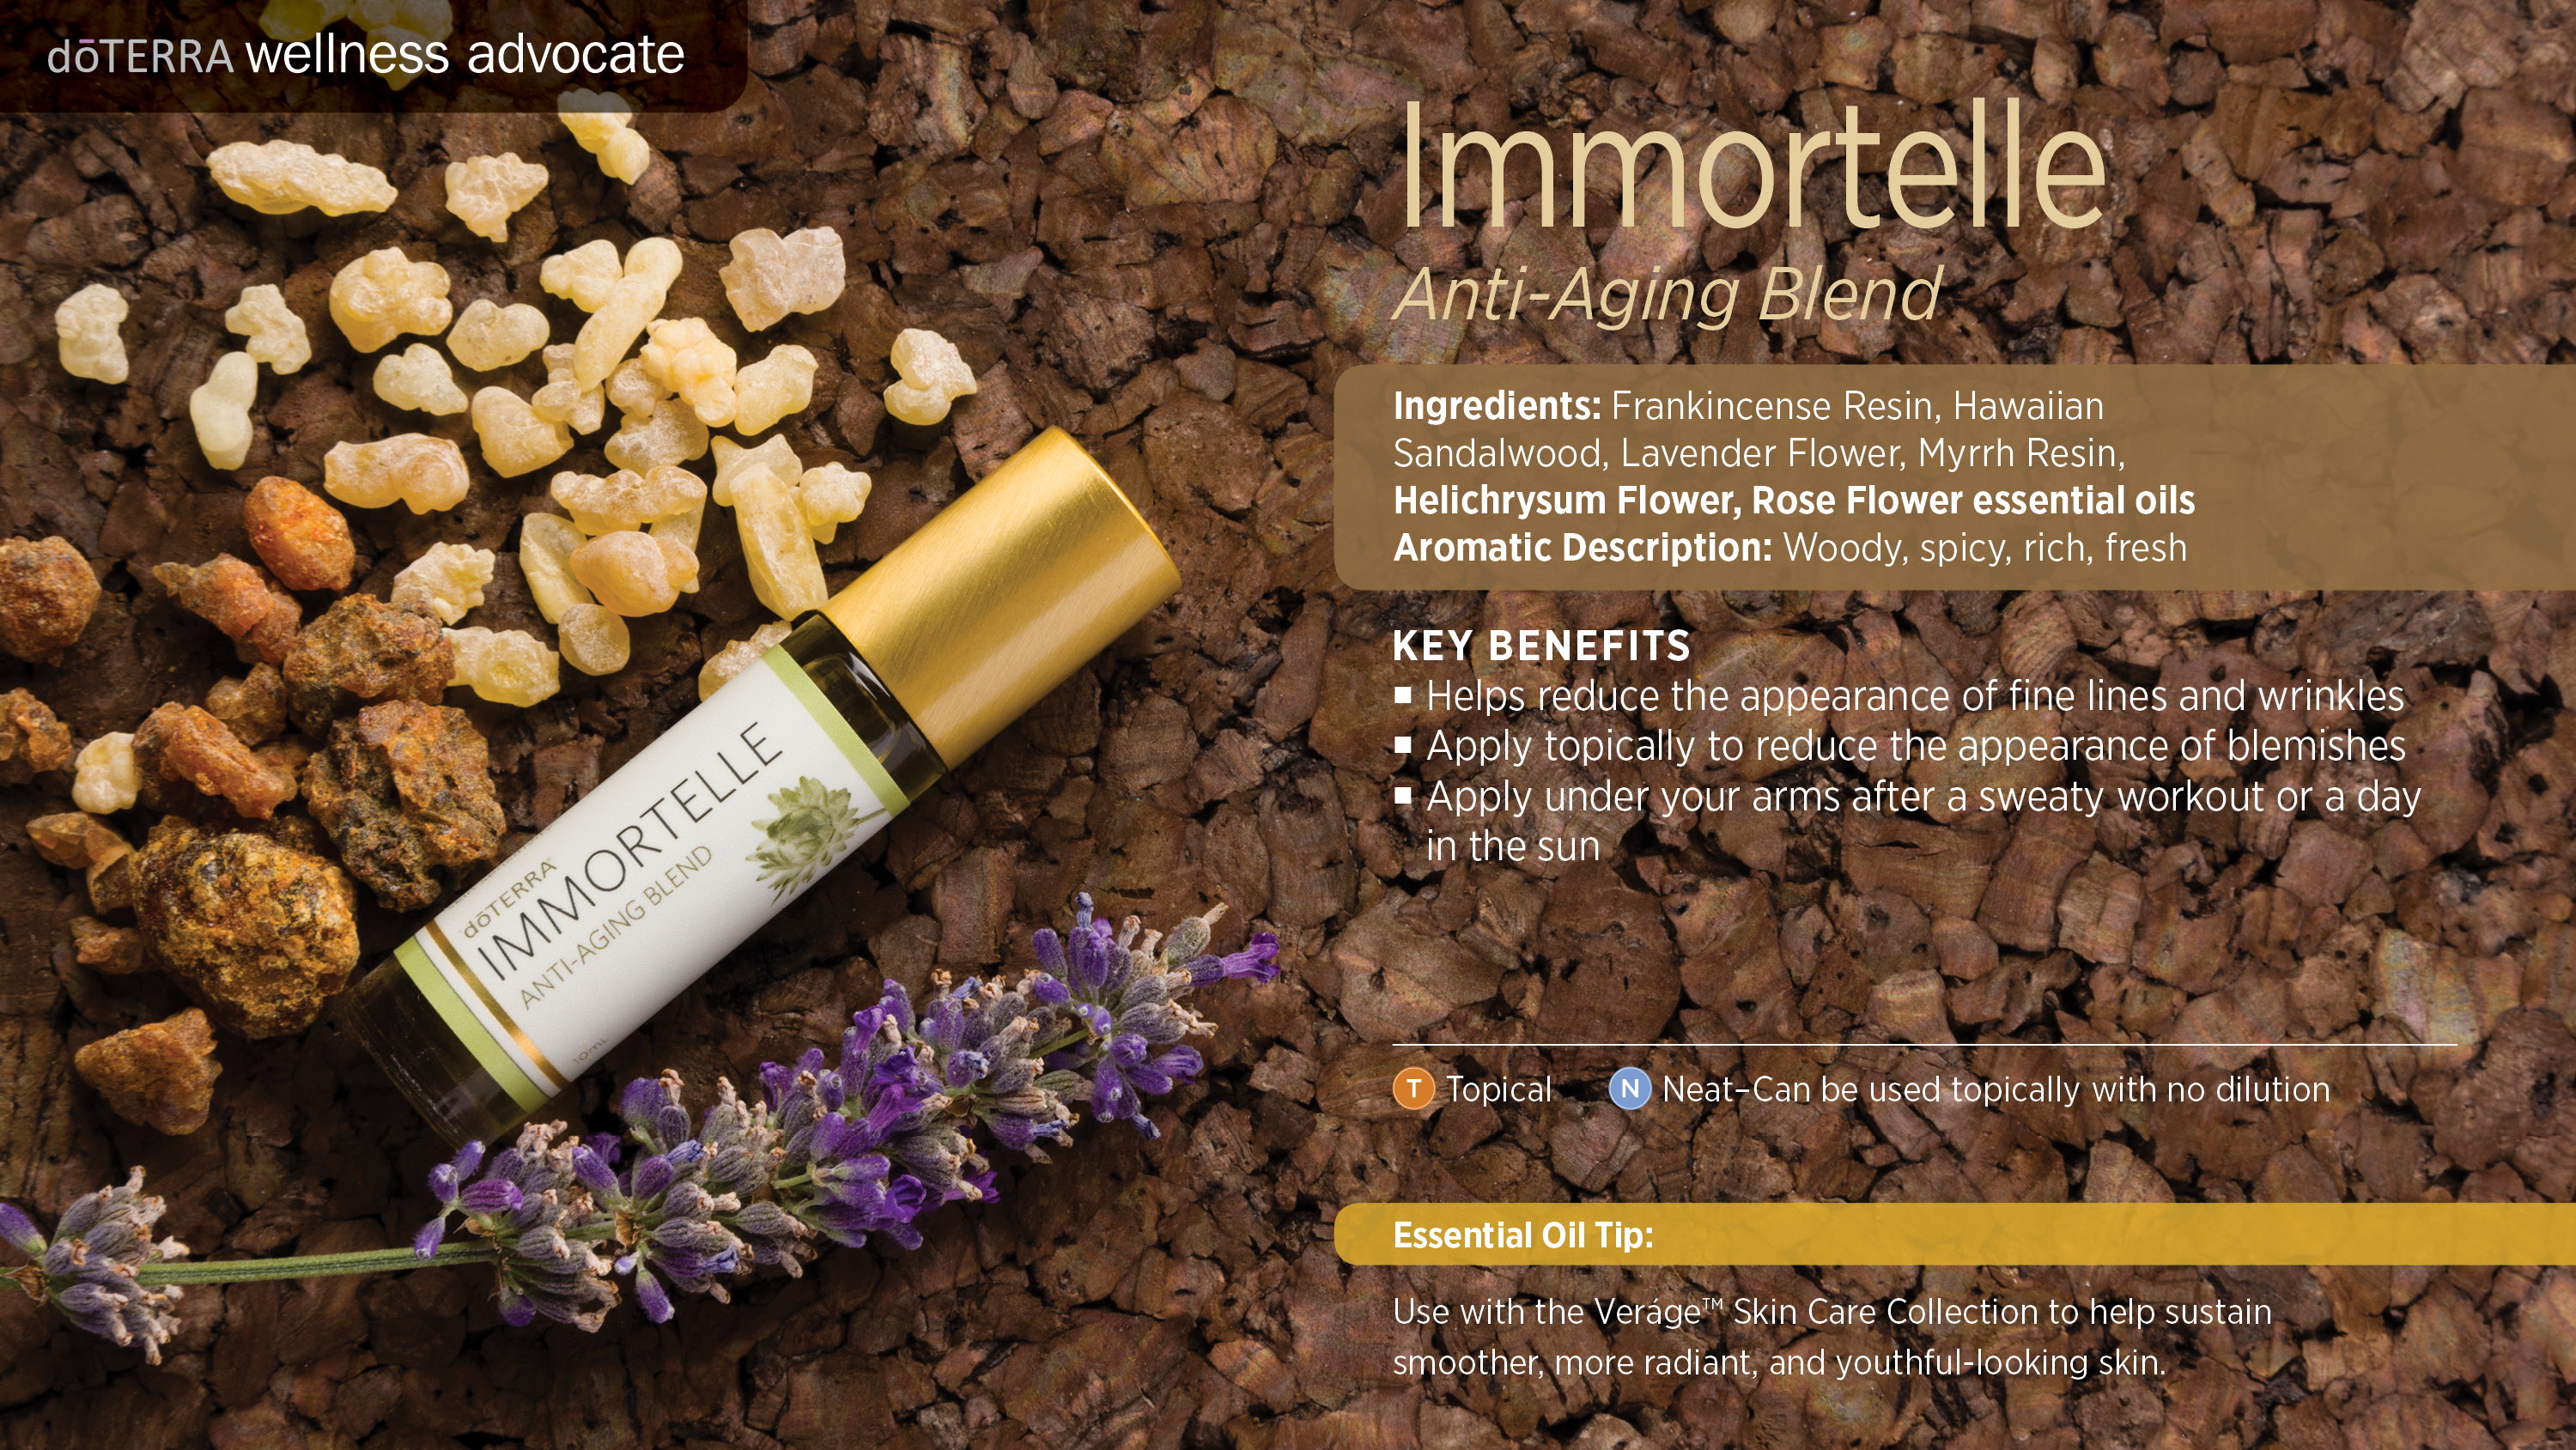 Doterra Immortelle Anti Aging Blend Uses Best Essential Oils